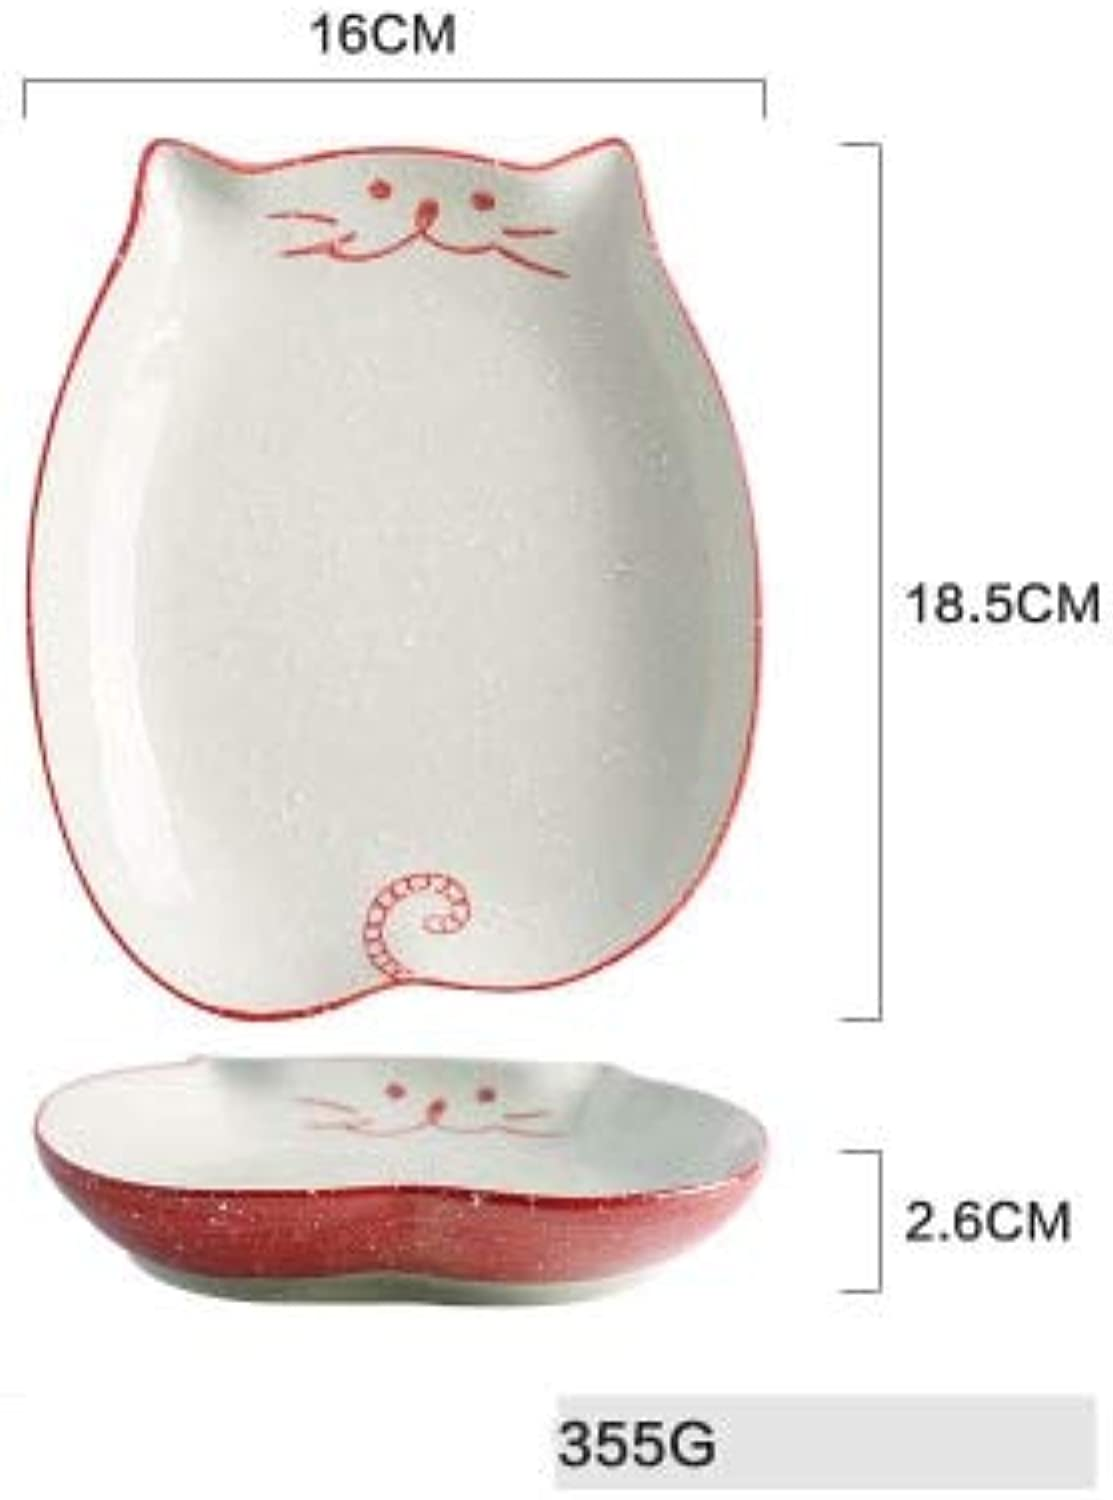 1 PC KINGLANG Ceramic Porcelain Creative Cute Cat Shaped Plate Dish Dinner Bowl Spoon Plates Kitchen Tableware   7.75 inch Plate